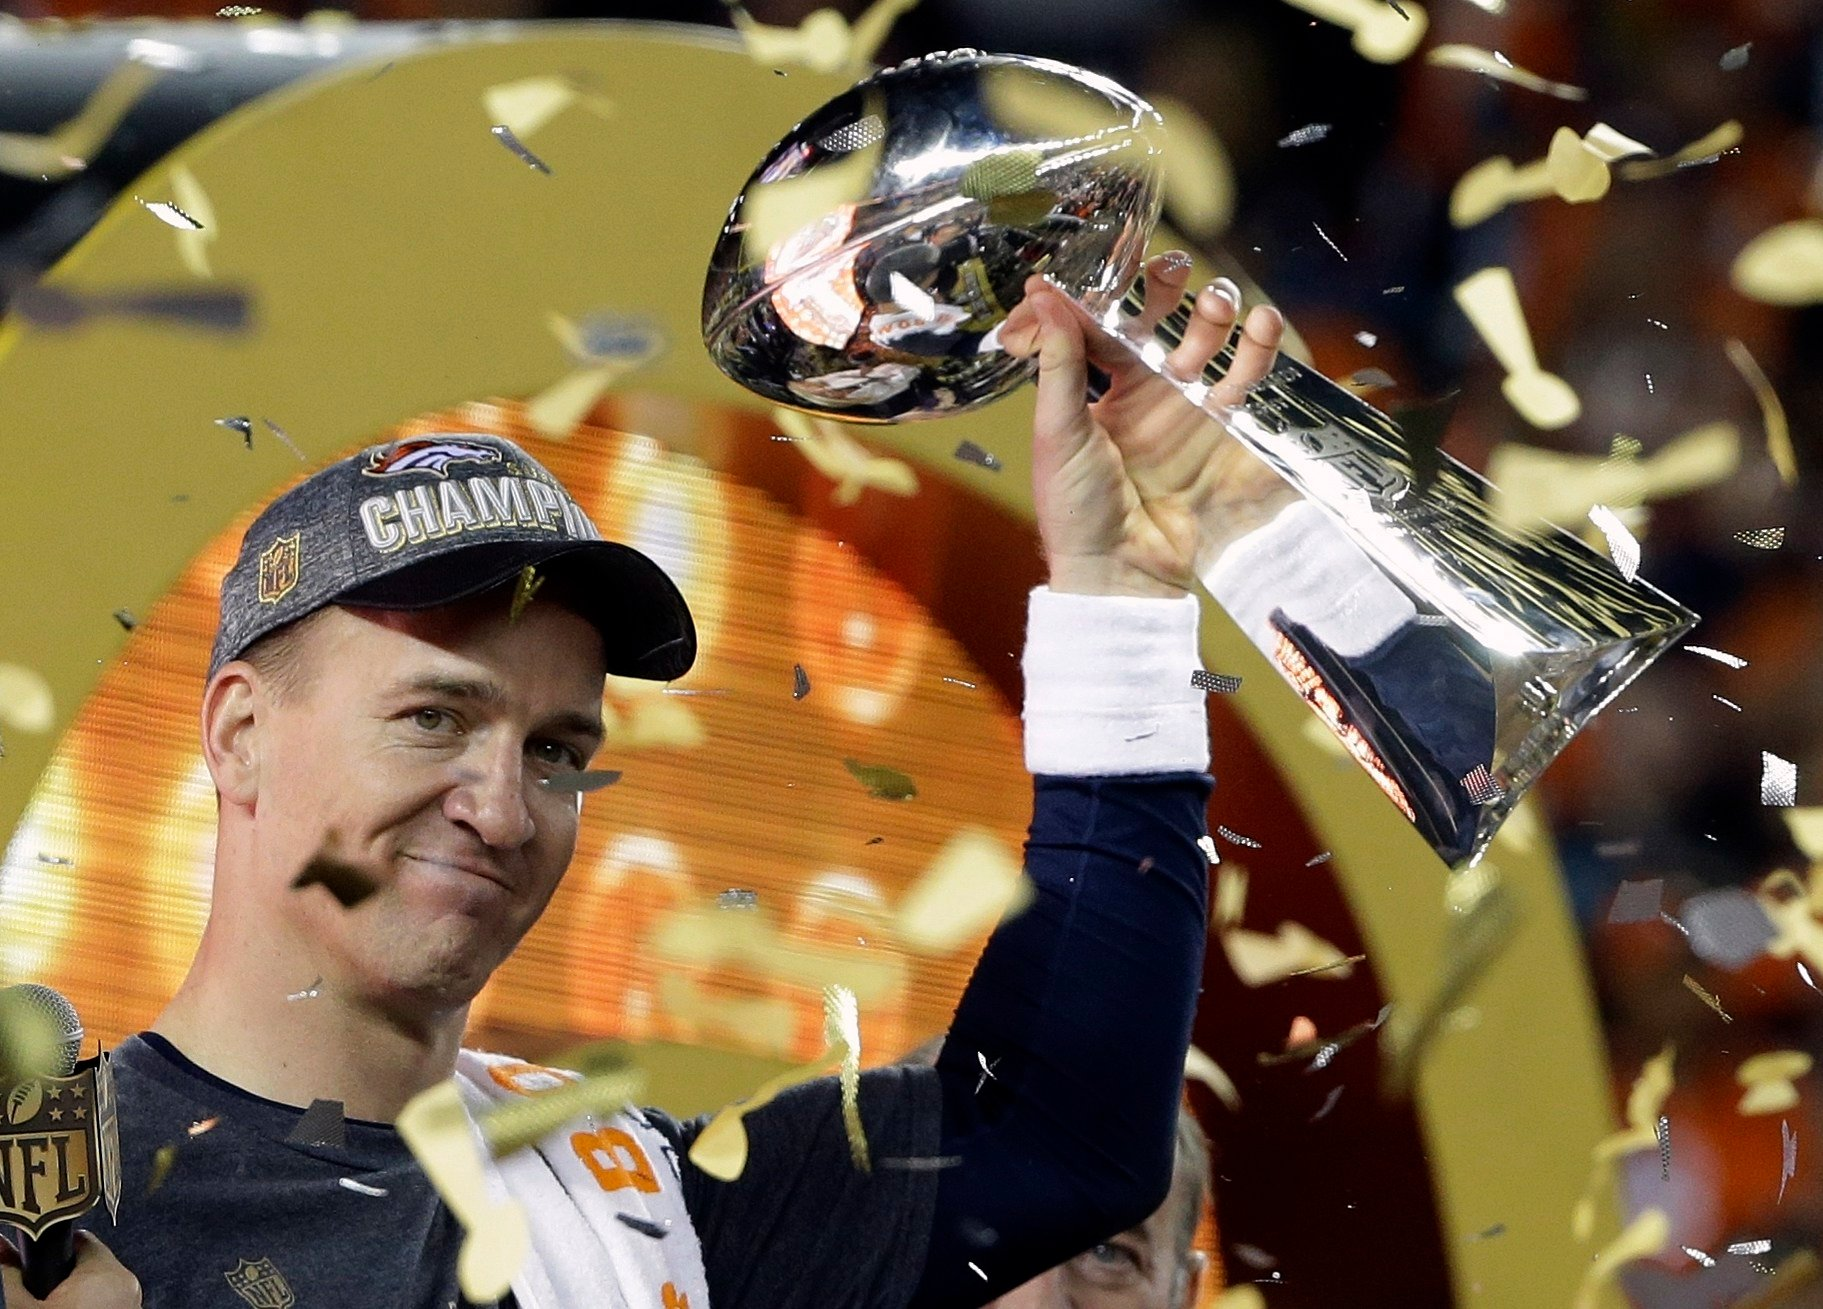 Broncos quarterback Peyton Manning hoists the Vince Lombardi Trophy after Denver won Super Bowl 50 Sunday.